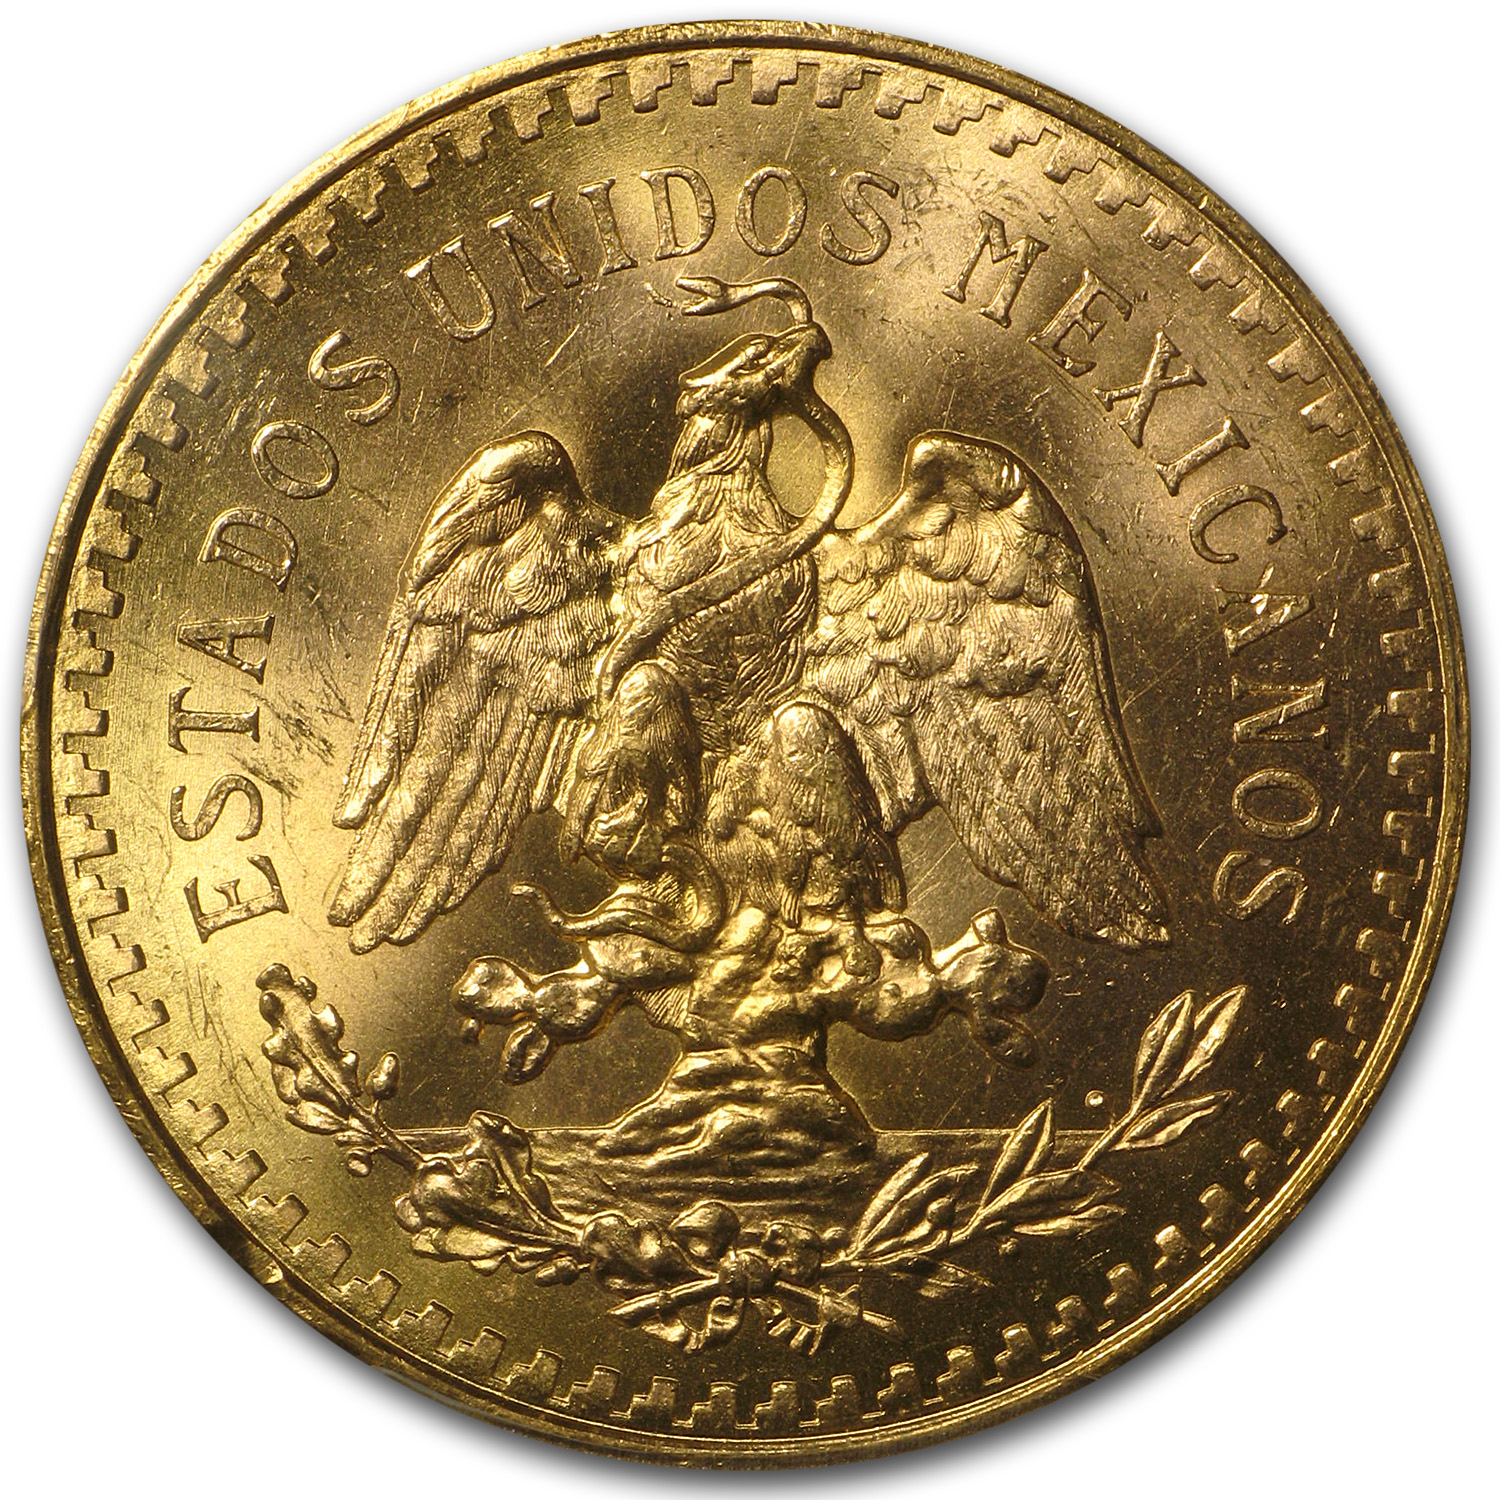 Mexico 1922 50 Pesos Gold Coin - MS-63 PCGS (Secure Plus!)